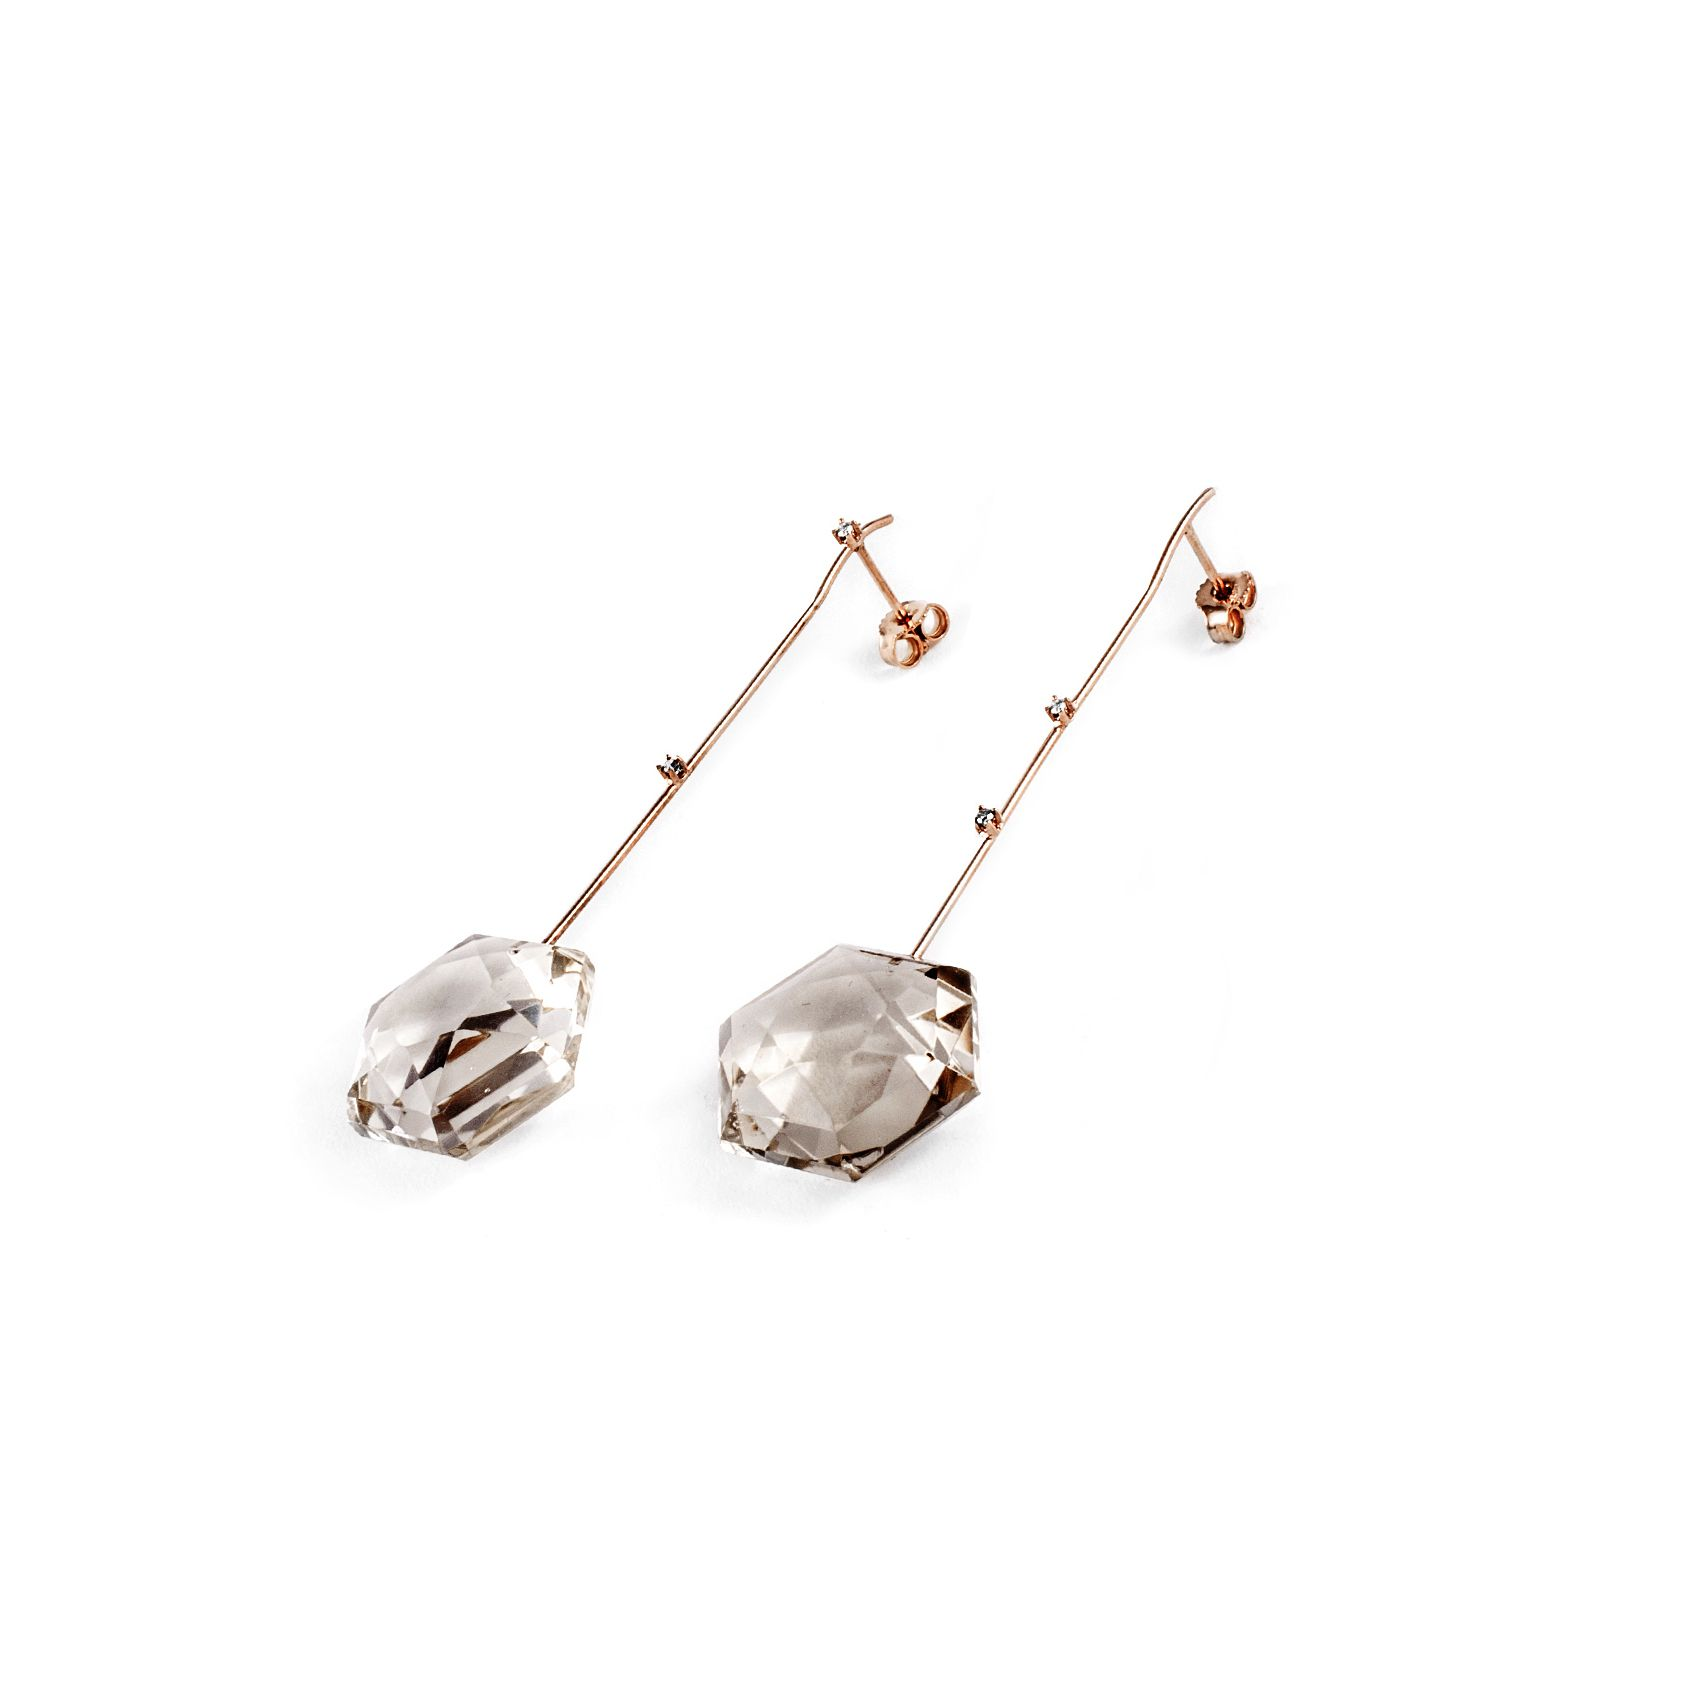 Hook earrings with quartz Yellow gold, diamonds and citrine quartz